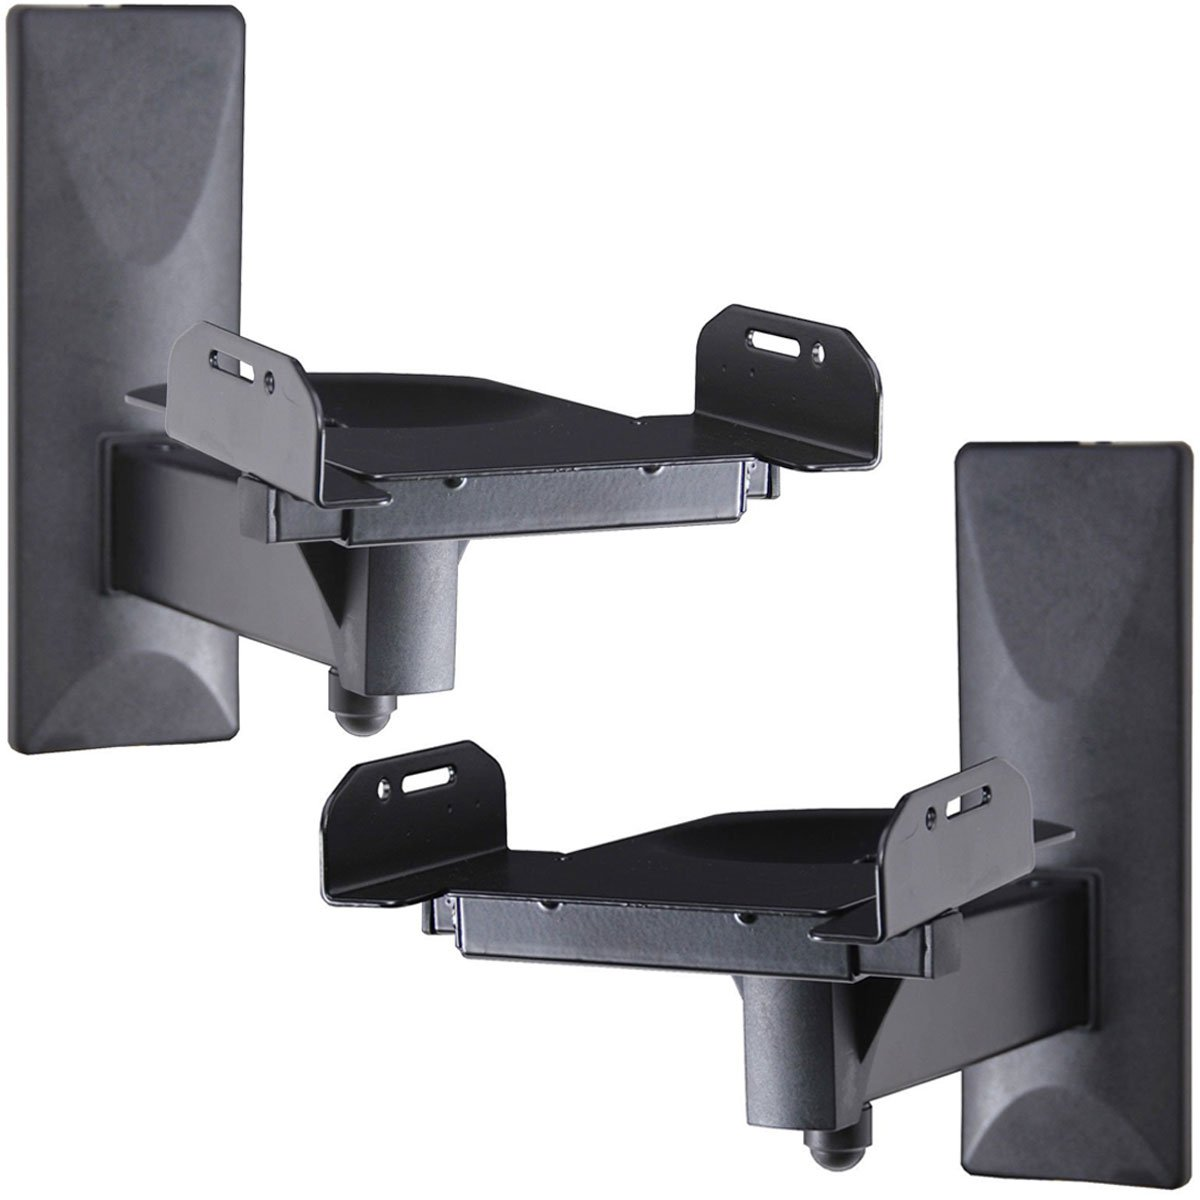 VideoSecu One Pair Of Side Clamping Bookshelf Speaker Mounting